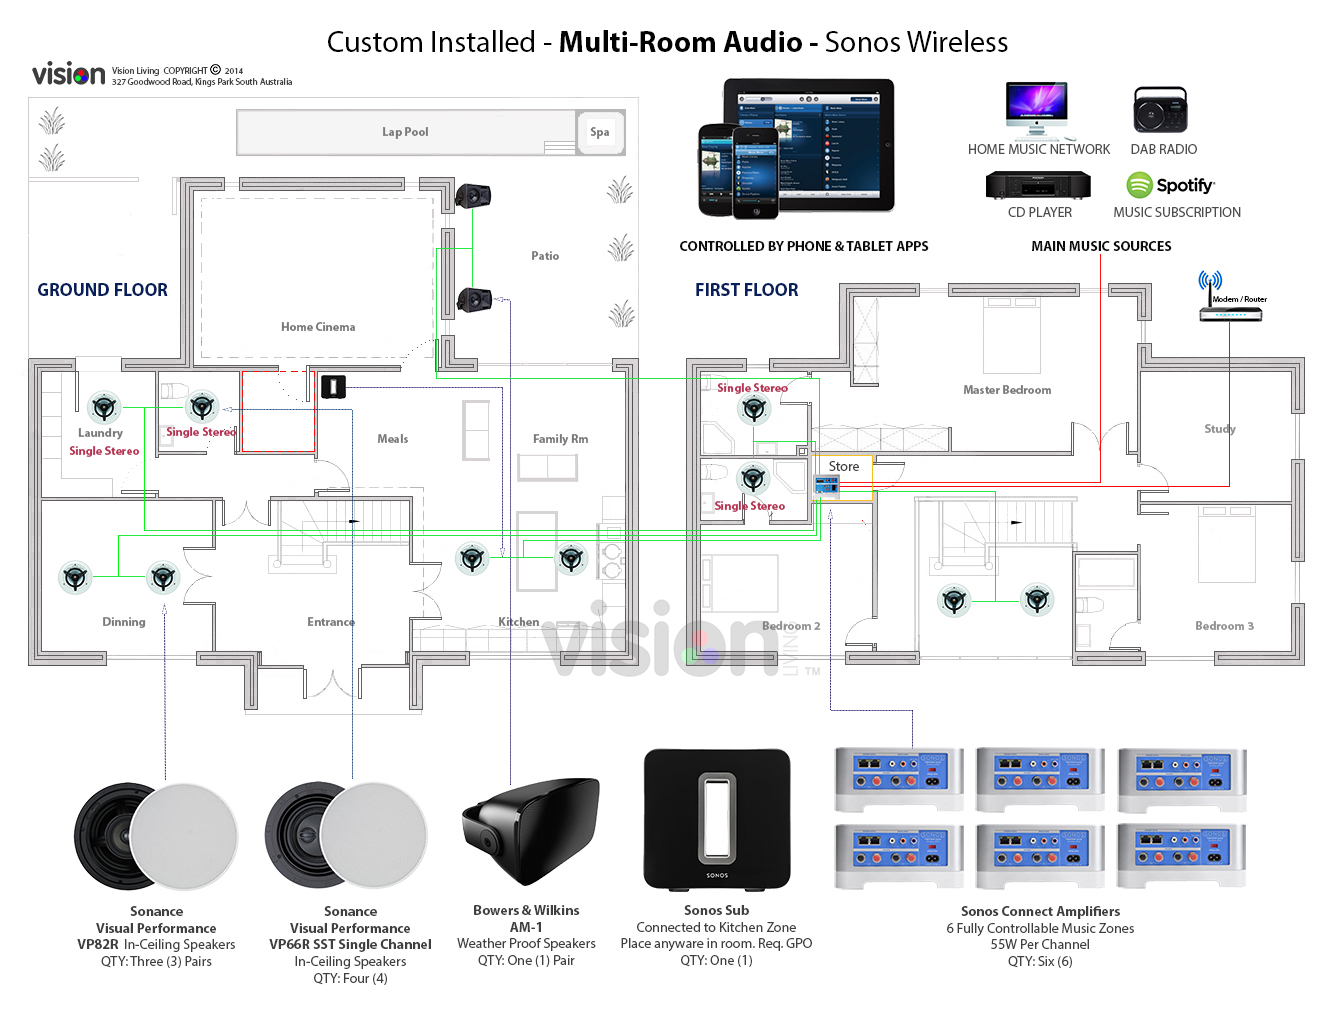 Multiroom Audio And Video Vision Living Custom Trailer Wiring Diagram Paris If You Love Music Will Its As Simple That It Makes So Easyto Add To Your Life In One Room Or Many